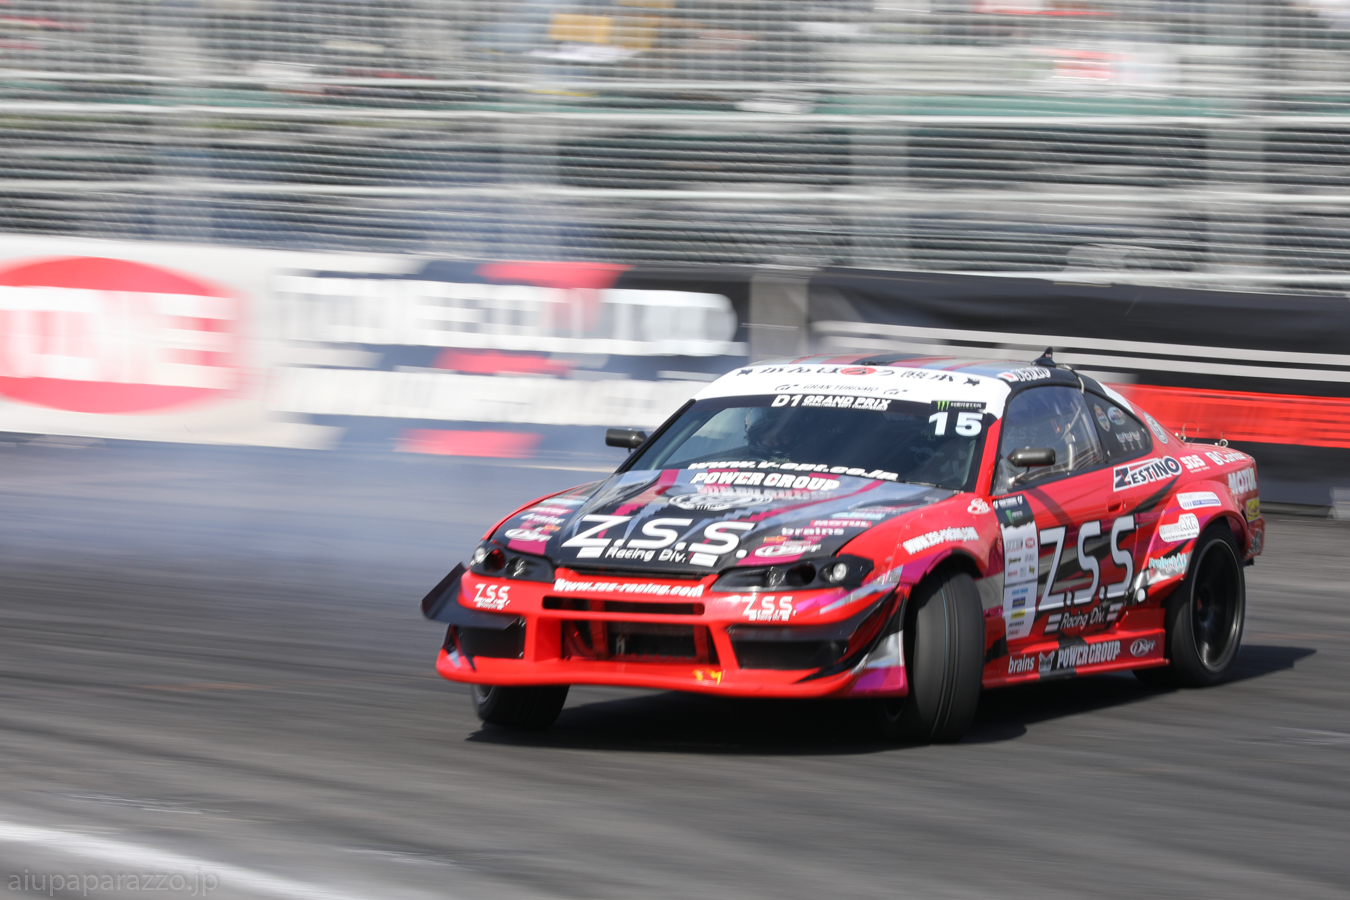 d1gp_tan2016lap3-17.jpg